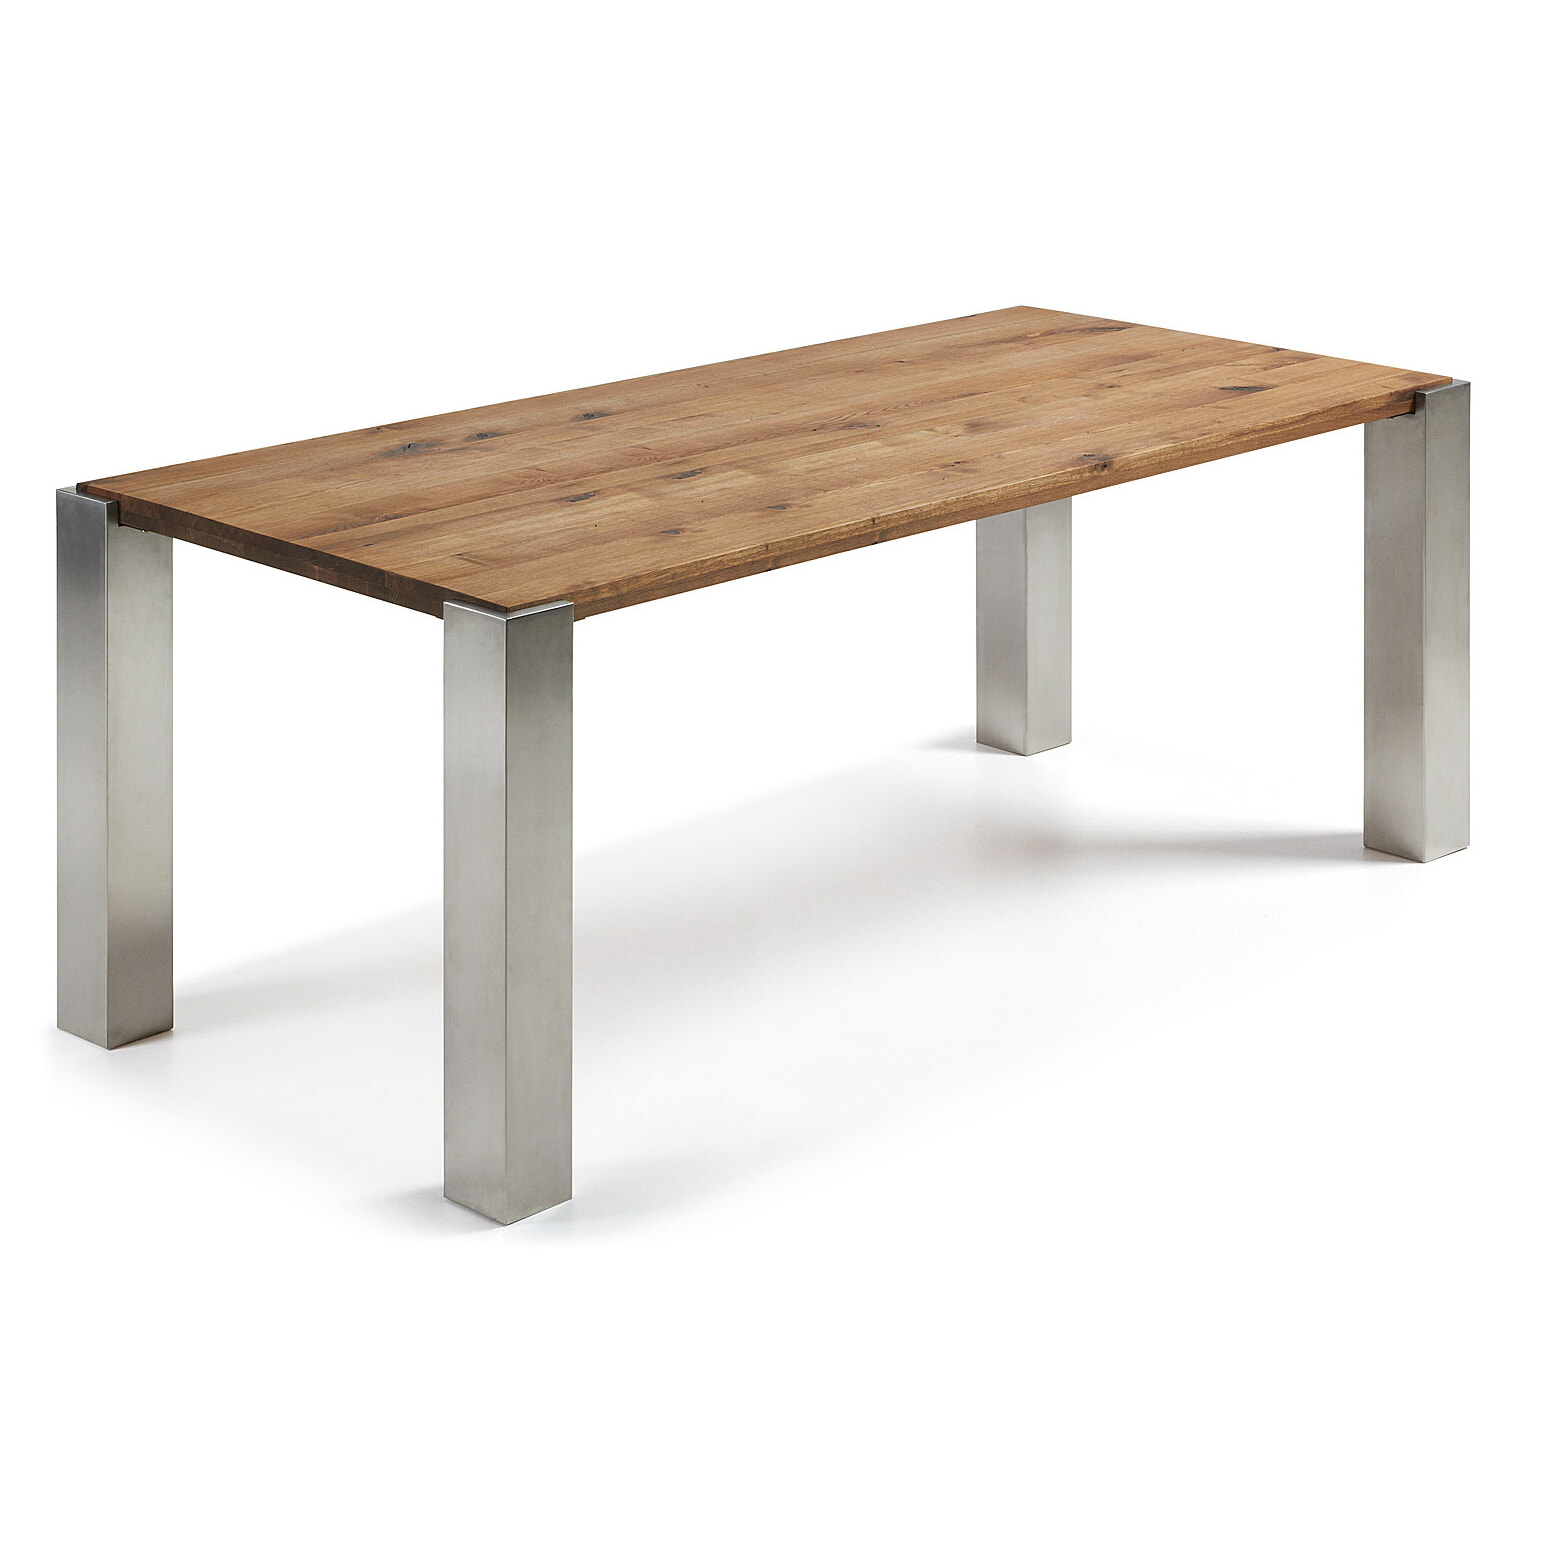 Kave Home Eettafel 'Carly' 220 x 100 cm